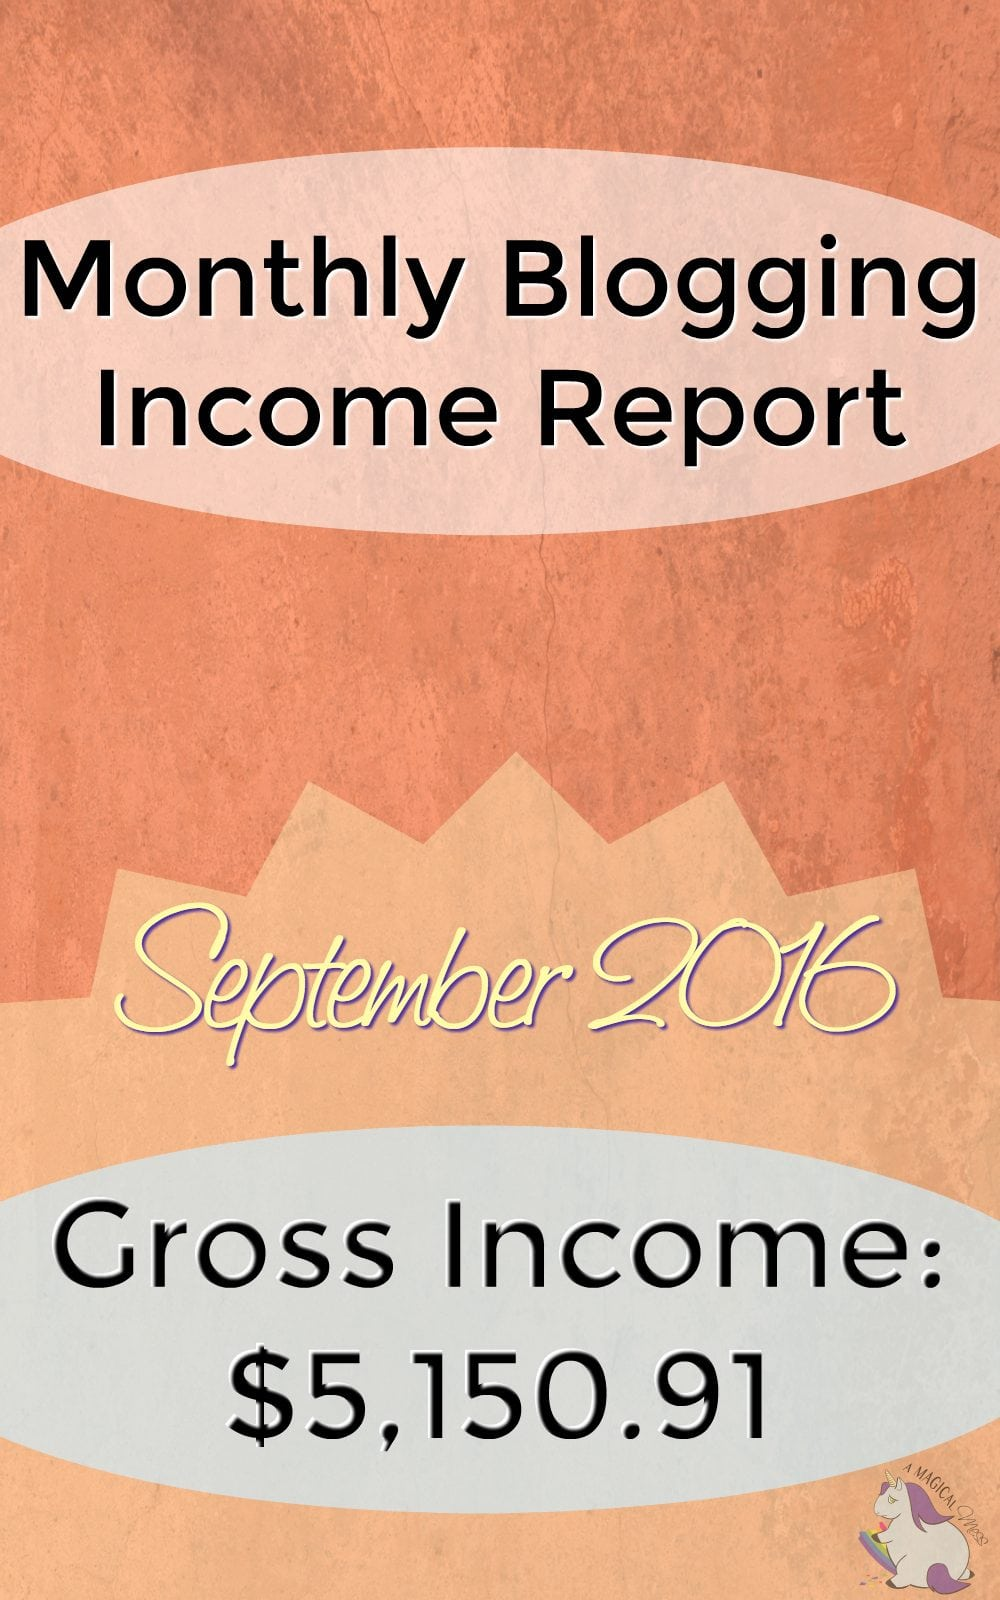 Monthly Blog Income Report - September 2016